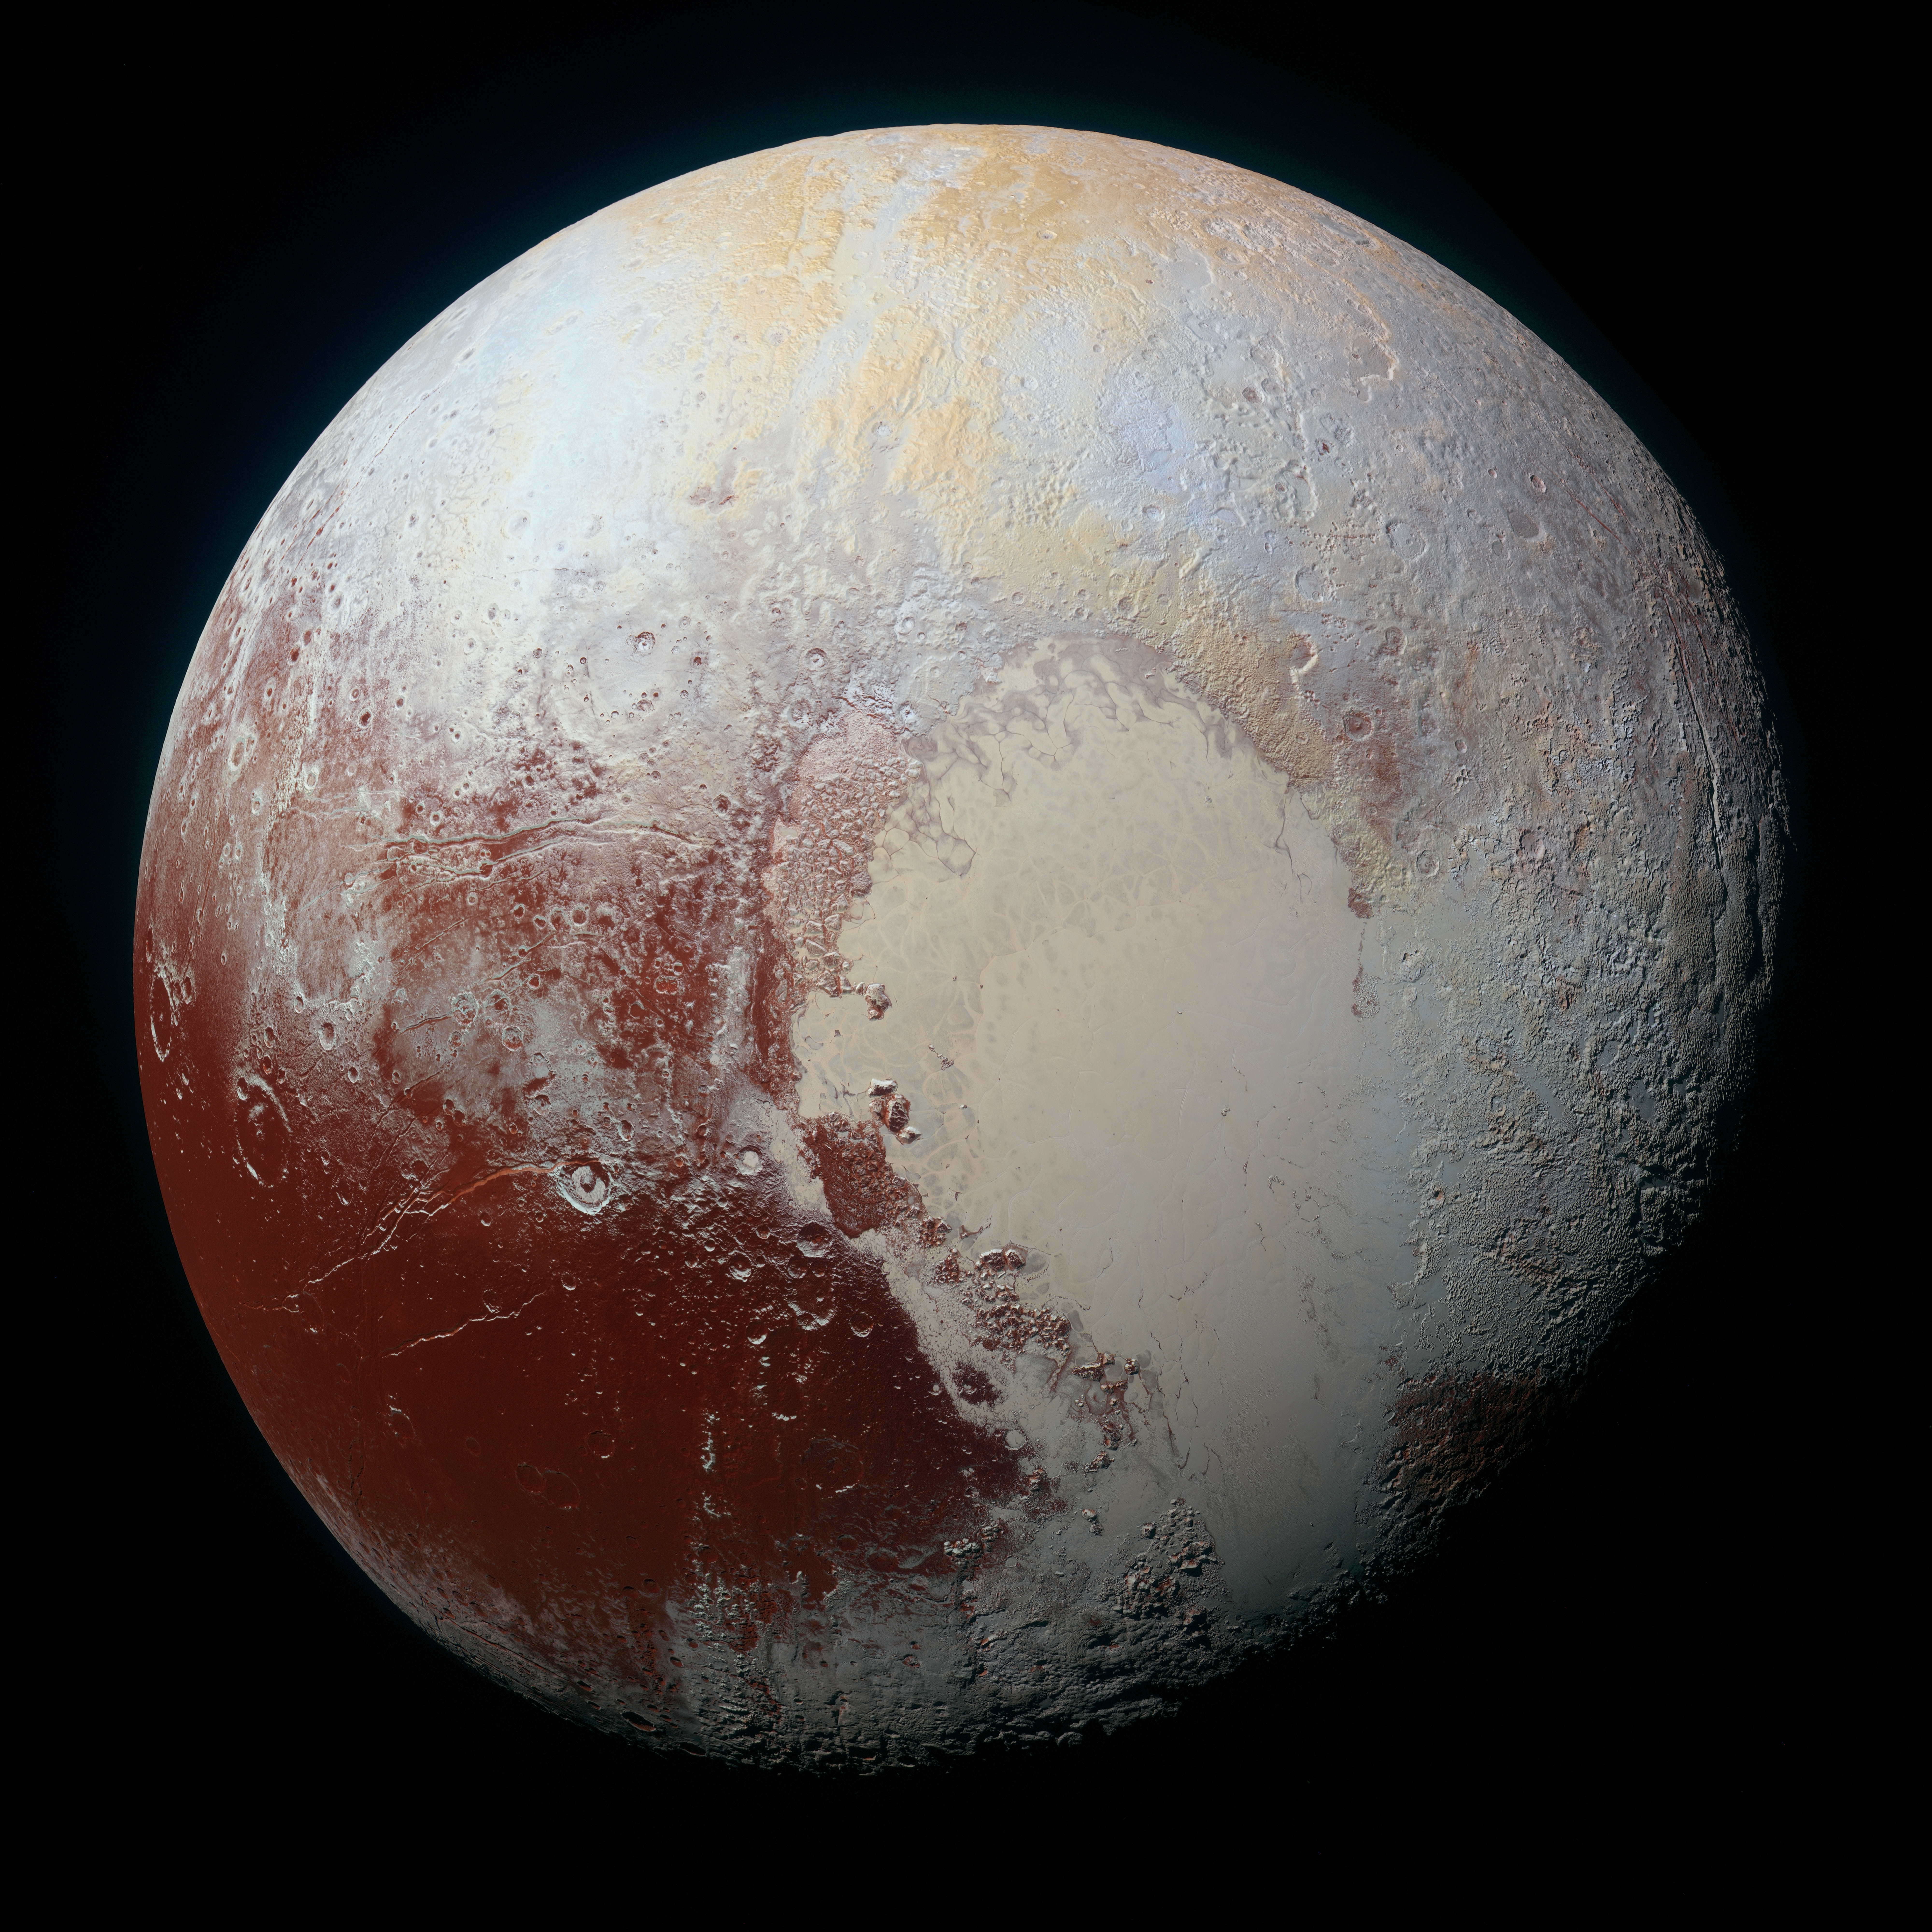 NASA's New Horizons spacecraft captured this high-resolution enhanced color view of Pluto on July 14, 2015. The image combines blue, red and infrared images taken by the Ralph/Multispectral Visual Imaging Camera (MVIC). Pluto's surface sports a remarkable range of subtle colors, enhanced in this view to a rainbow of pale blues, yellows, oranges, and deep reds. Many landforms have their own distinct colors, telling a complex geological and climatological story that scientists have only just begun to decode. The image resolves details and colors on scales as small as 0.8 miles (1.3 kilometers). The viewer is encouraged to zoom in on the image on a larger screen to fully appreciate the complexity of Pluto's surface features.